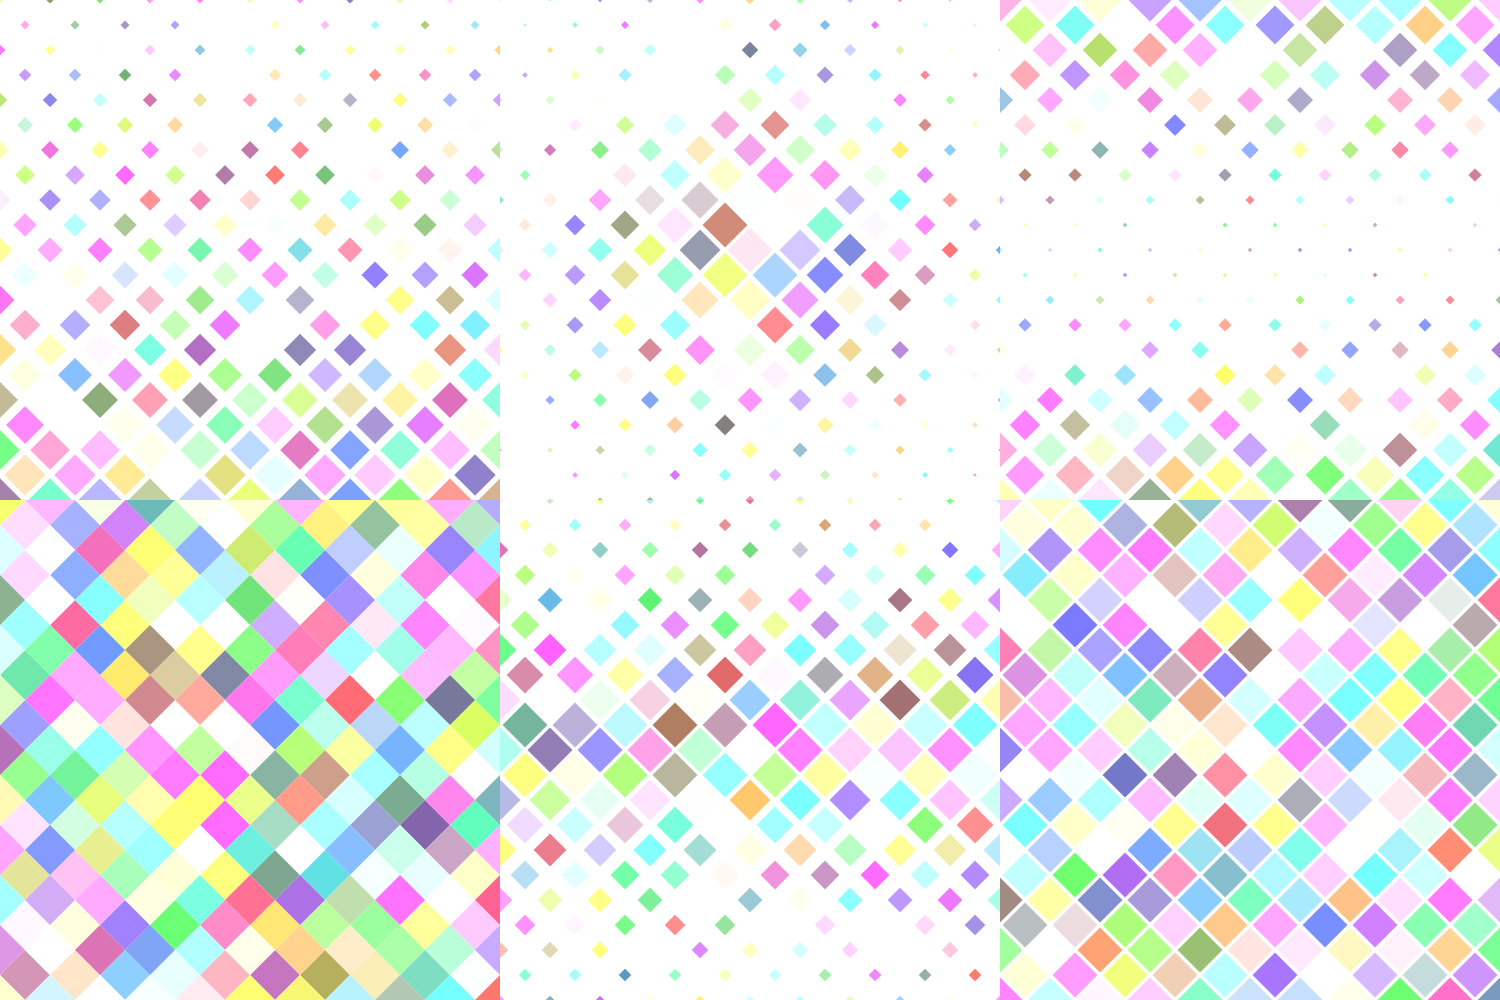 24 Multicolored Square Patterns (AI, EPS, JPG 5000x5000) example image 6